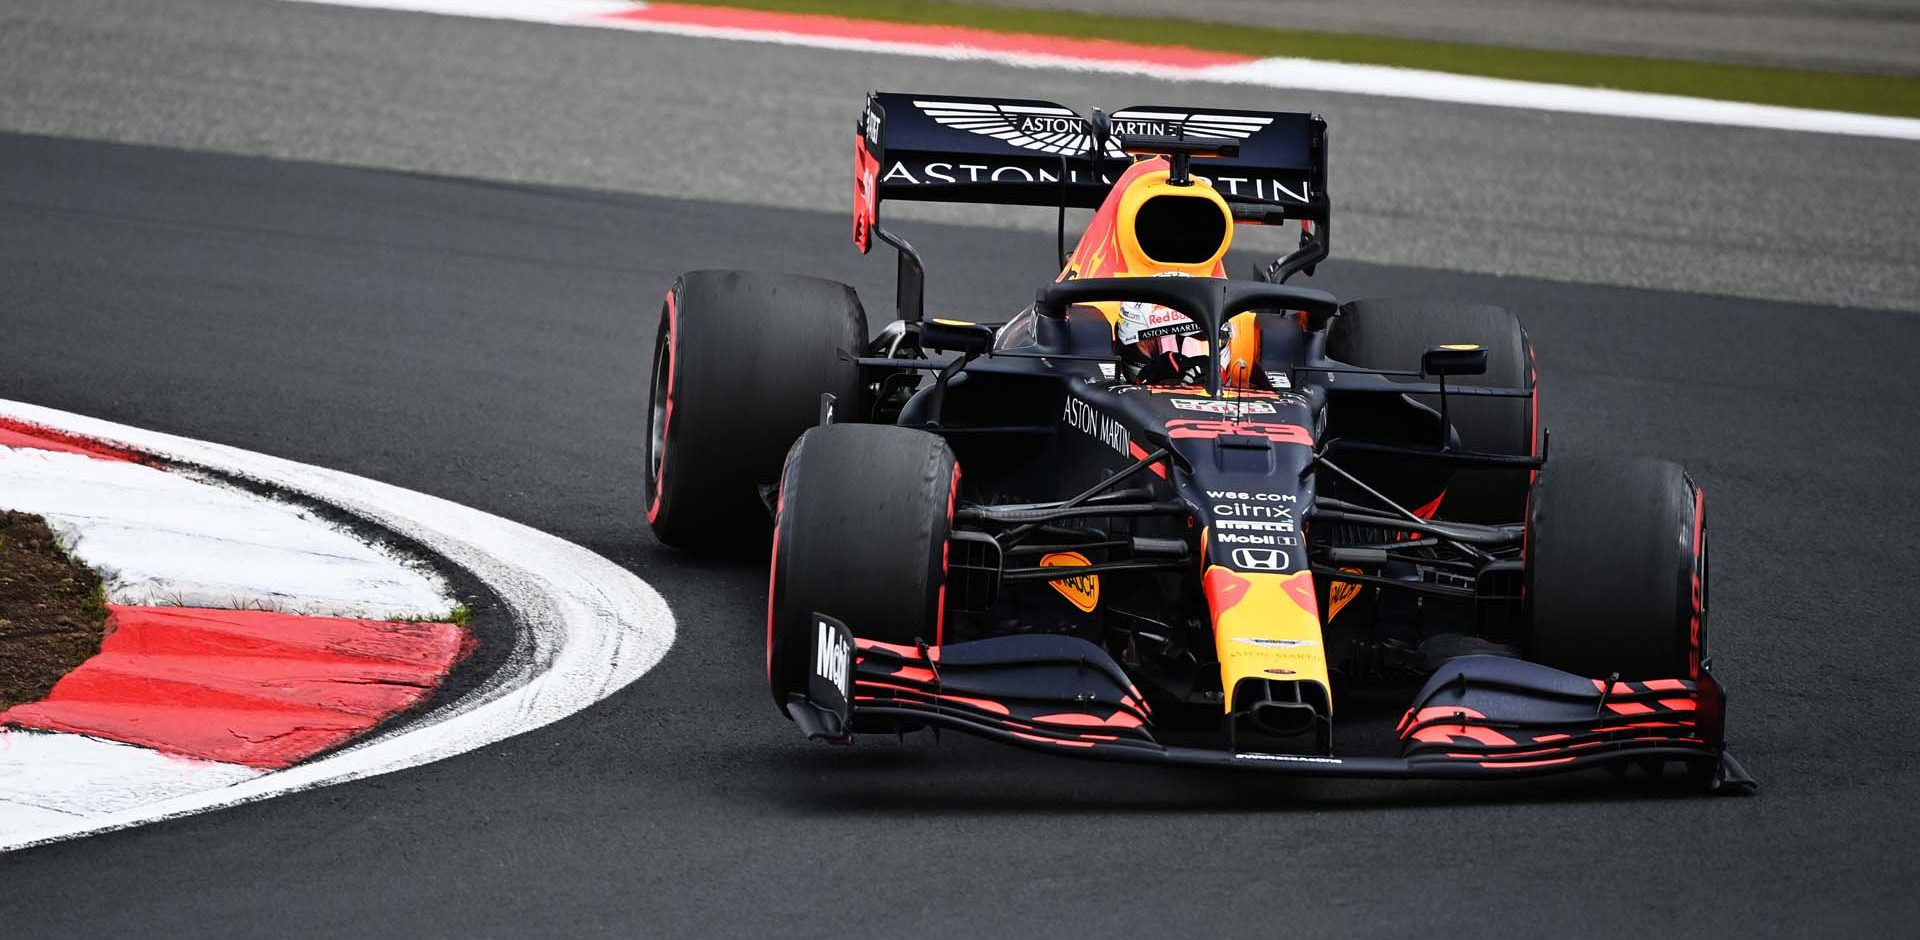 NUERBURG, GERMANY - OCTOBER 11: Max Verstappen of the Netherlands driving the (33) Aston Martin Red Bull Racing RB16 on track during the F1 Eifel Grand Prix at Nuerburgring on October 11, 2020 in Nuerburg, Germany. (Photo by Ina Fassbender - Pool/Getty Images)